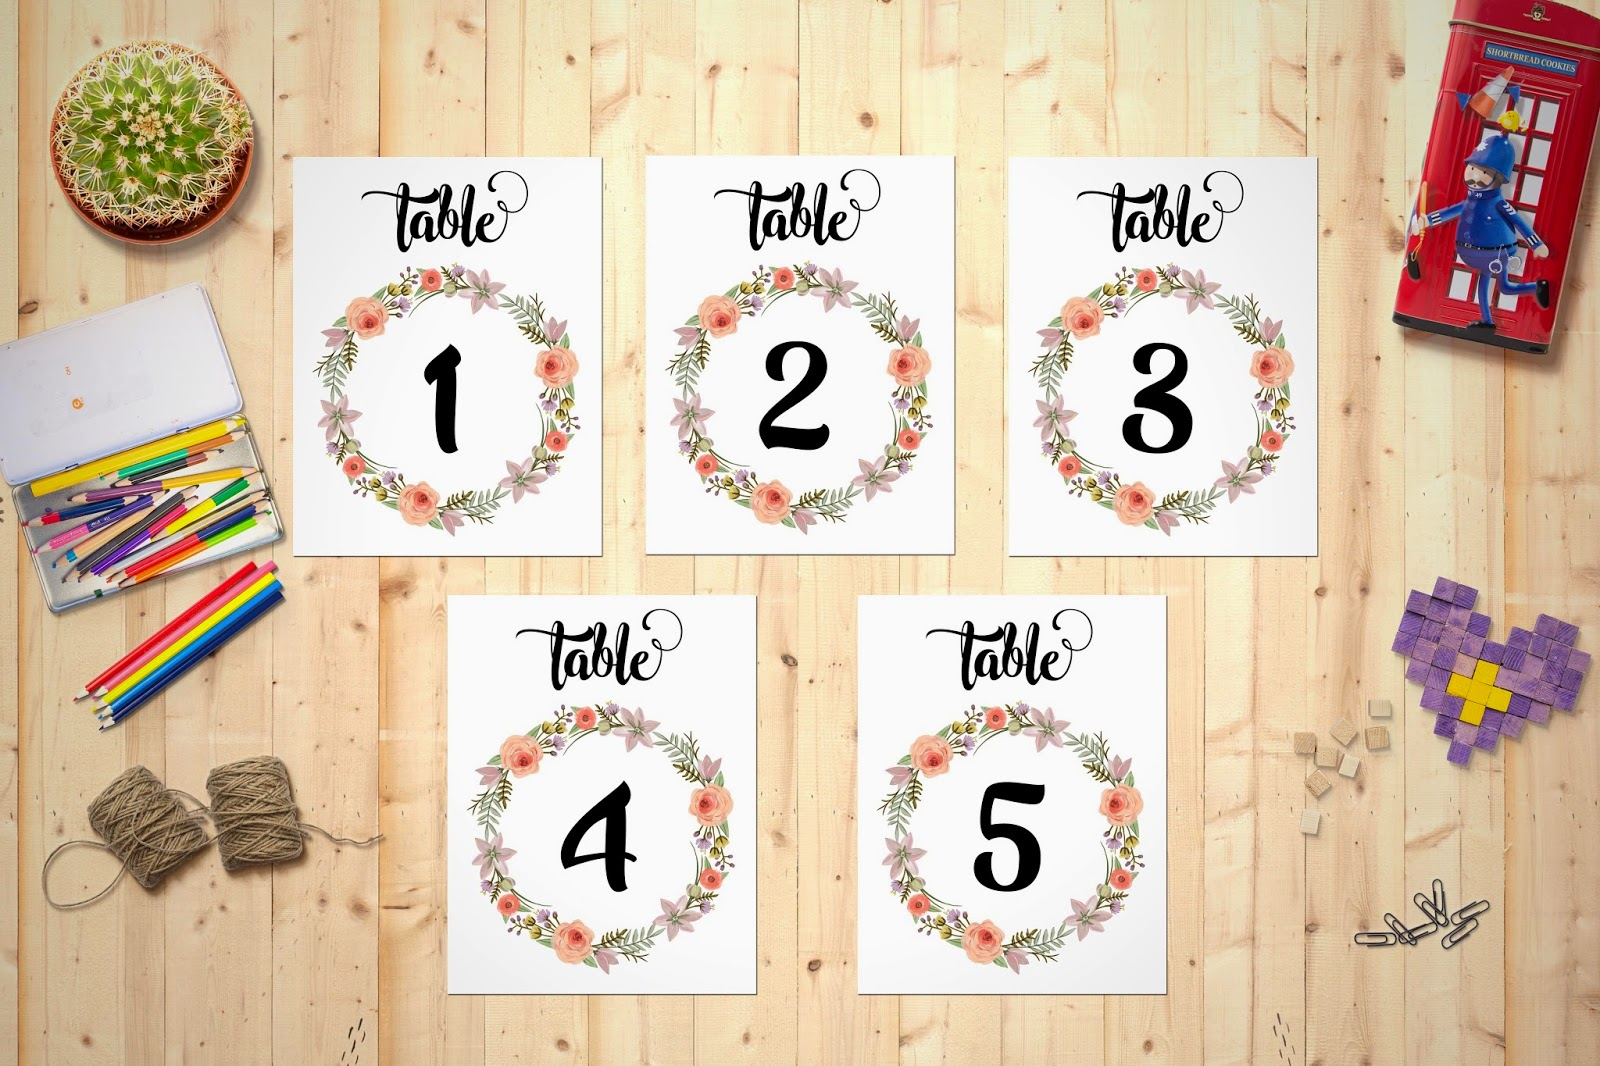 photograph about Free Printable Wedding Table Numbers titled PaperBelle MNL: FREEBIES - Printable Wedding day Desk Variety